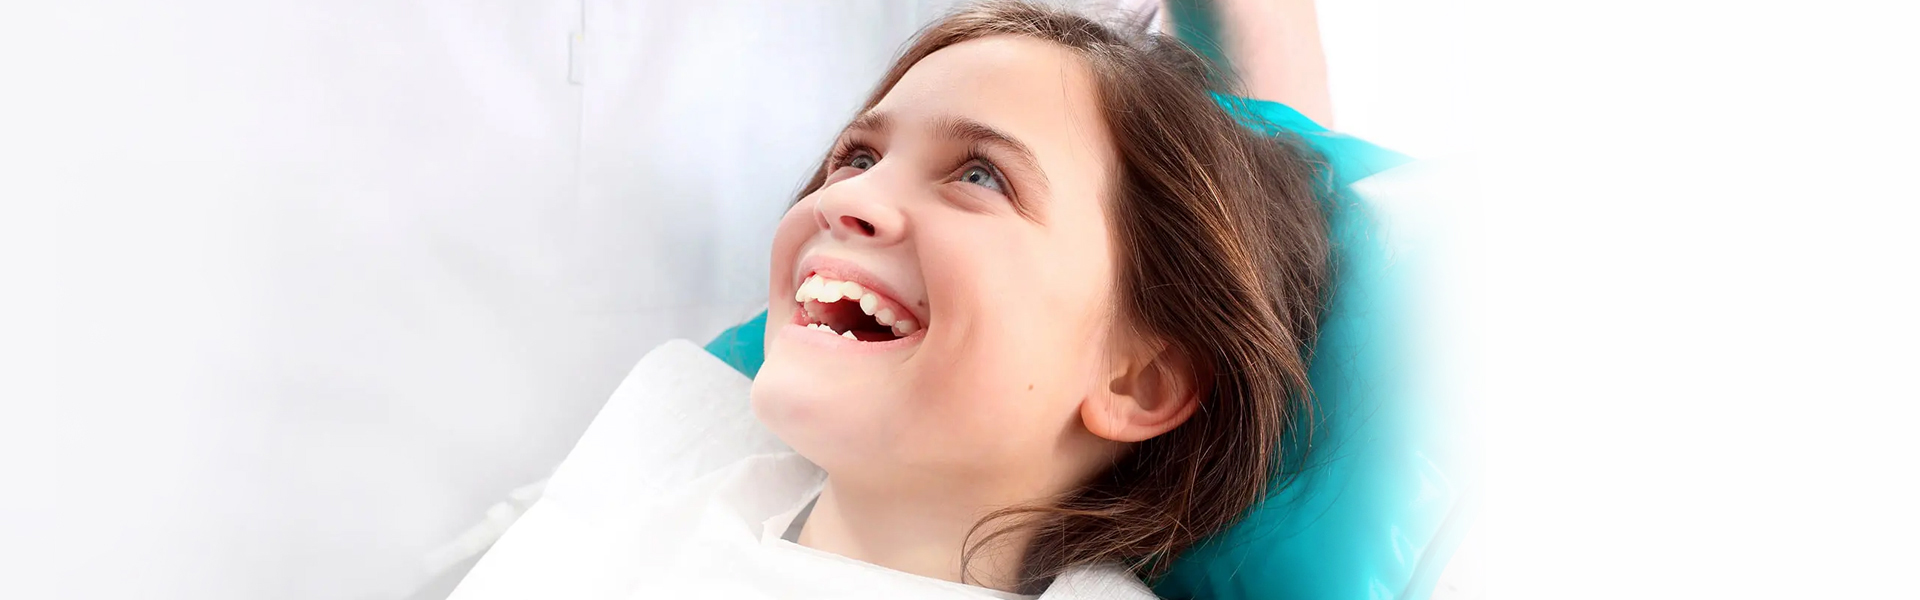 Children Dentistry 101: All You Need to Know